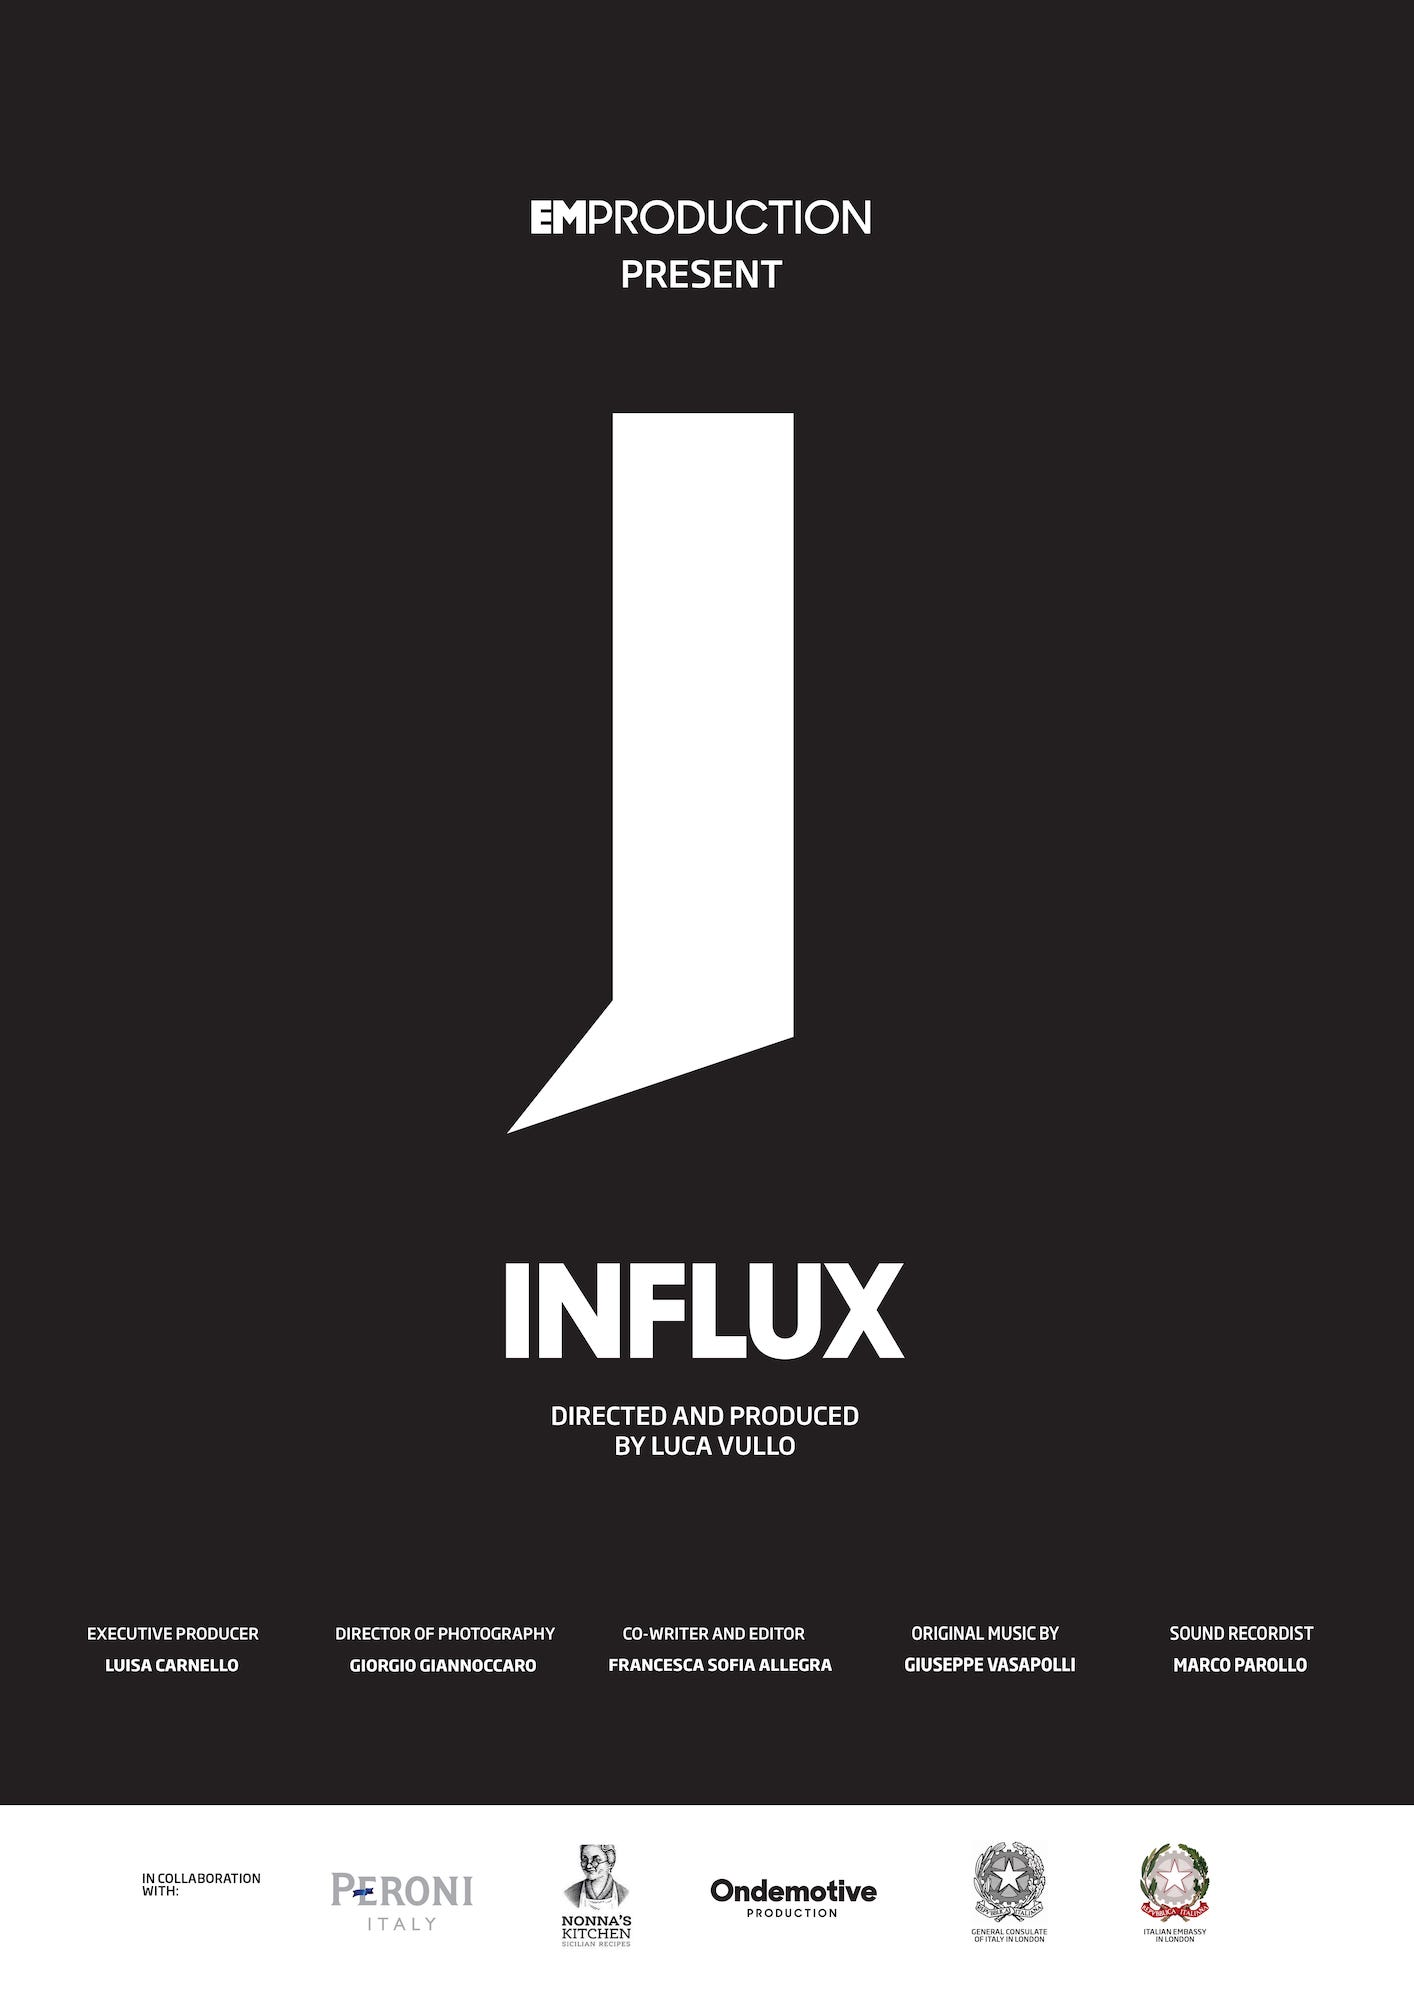 Influx: a documentary by Luca Vullo